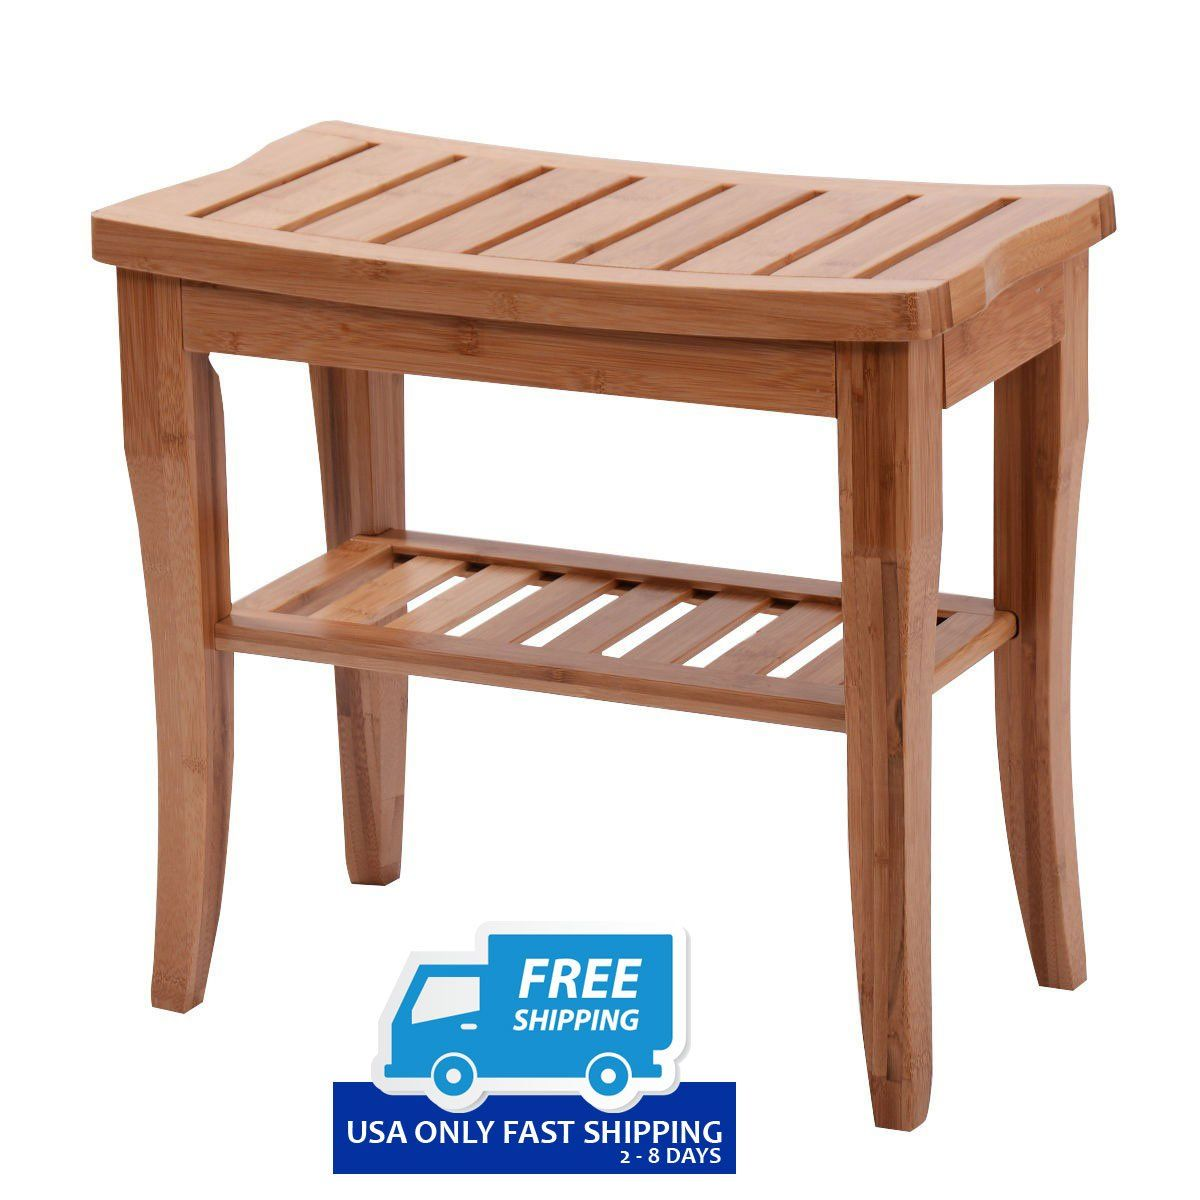 Bamboo Bathroom Shower Bench with Storage Shelf | ByChoiceProducts ...